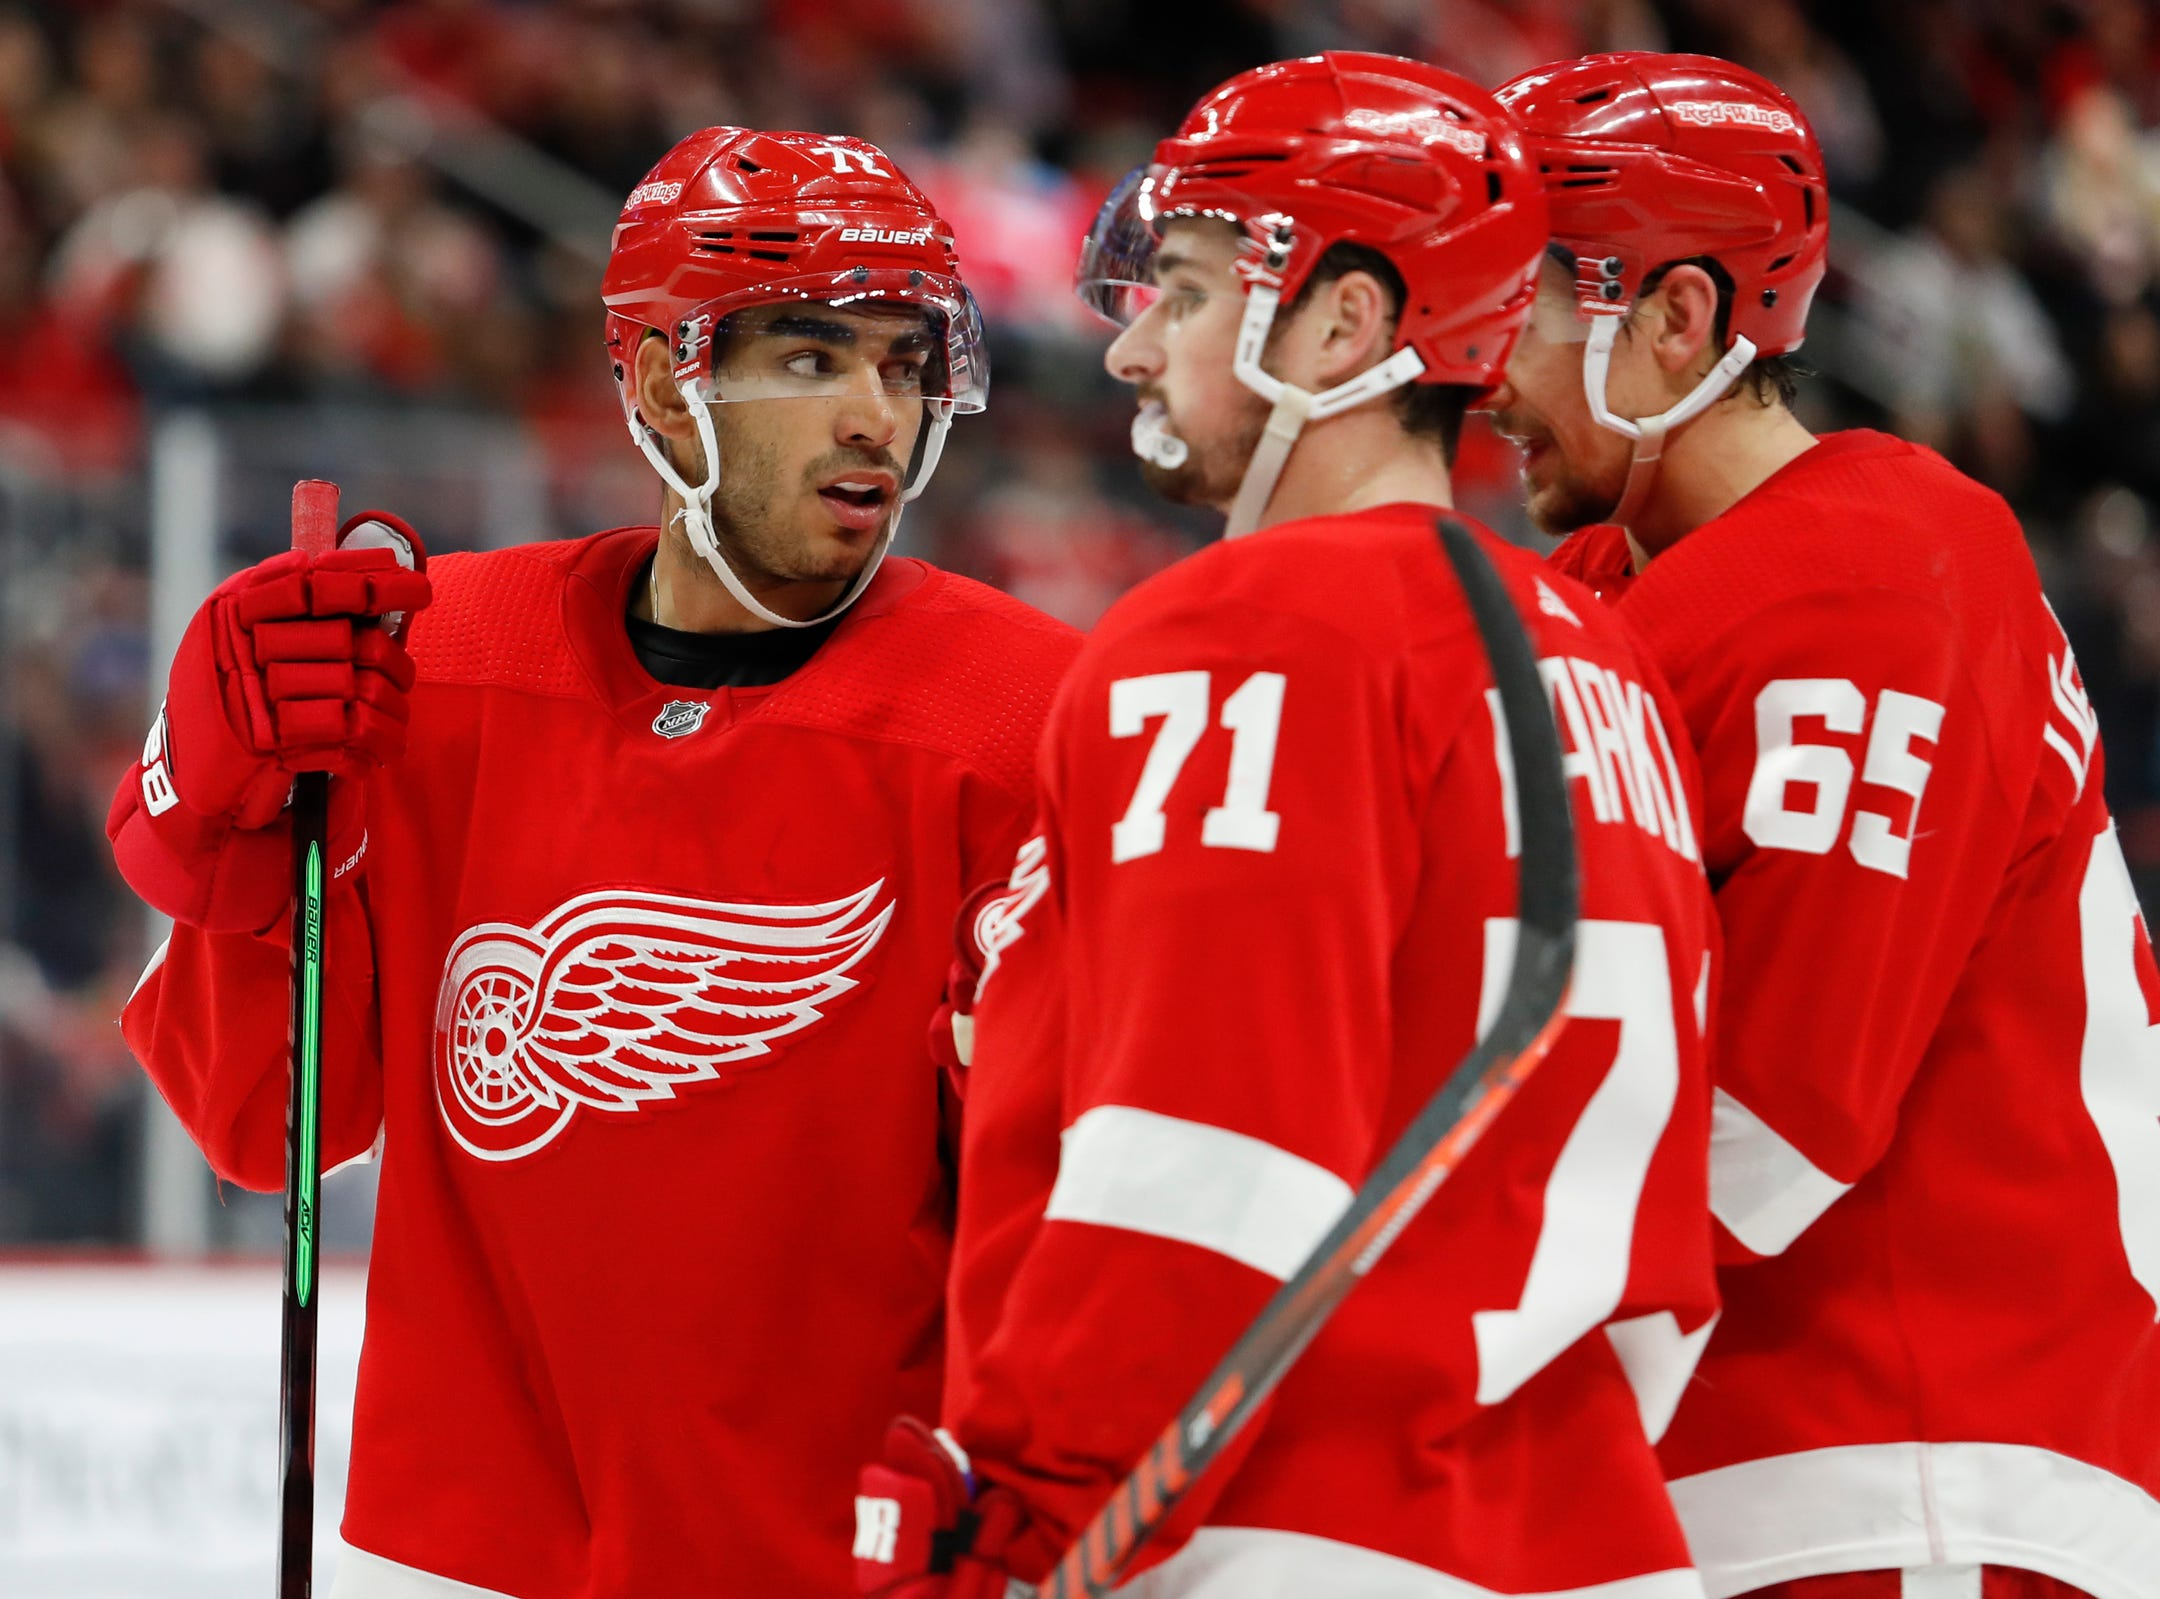 Red Wings center Andreas Athanasiou, left, chats with center Dylan Larkin (71) and defenseman Danny DeKeyser during overtime of the Wings' 5-4 loss on Wednesday, Feb. 20, 2019, at Little Caesars Arena.